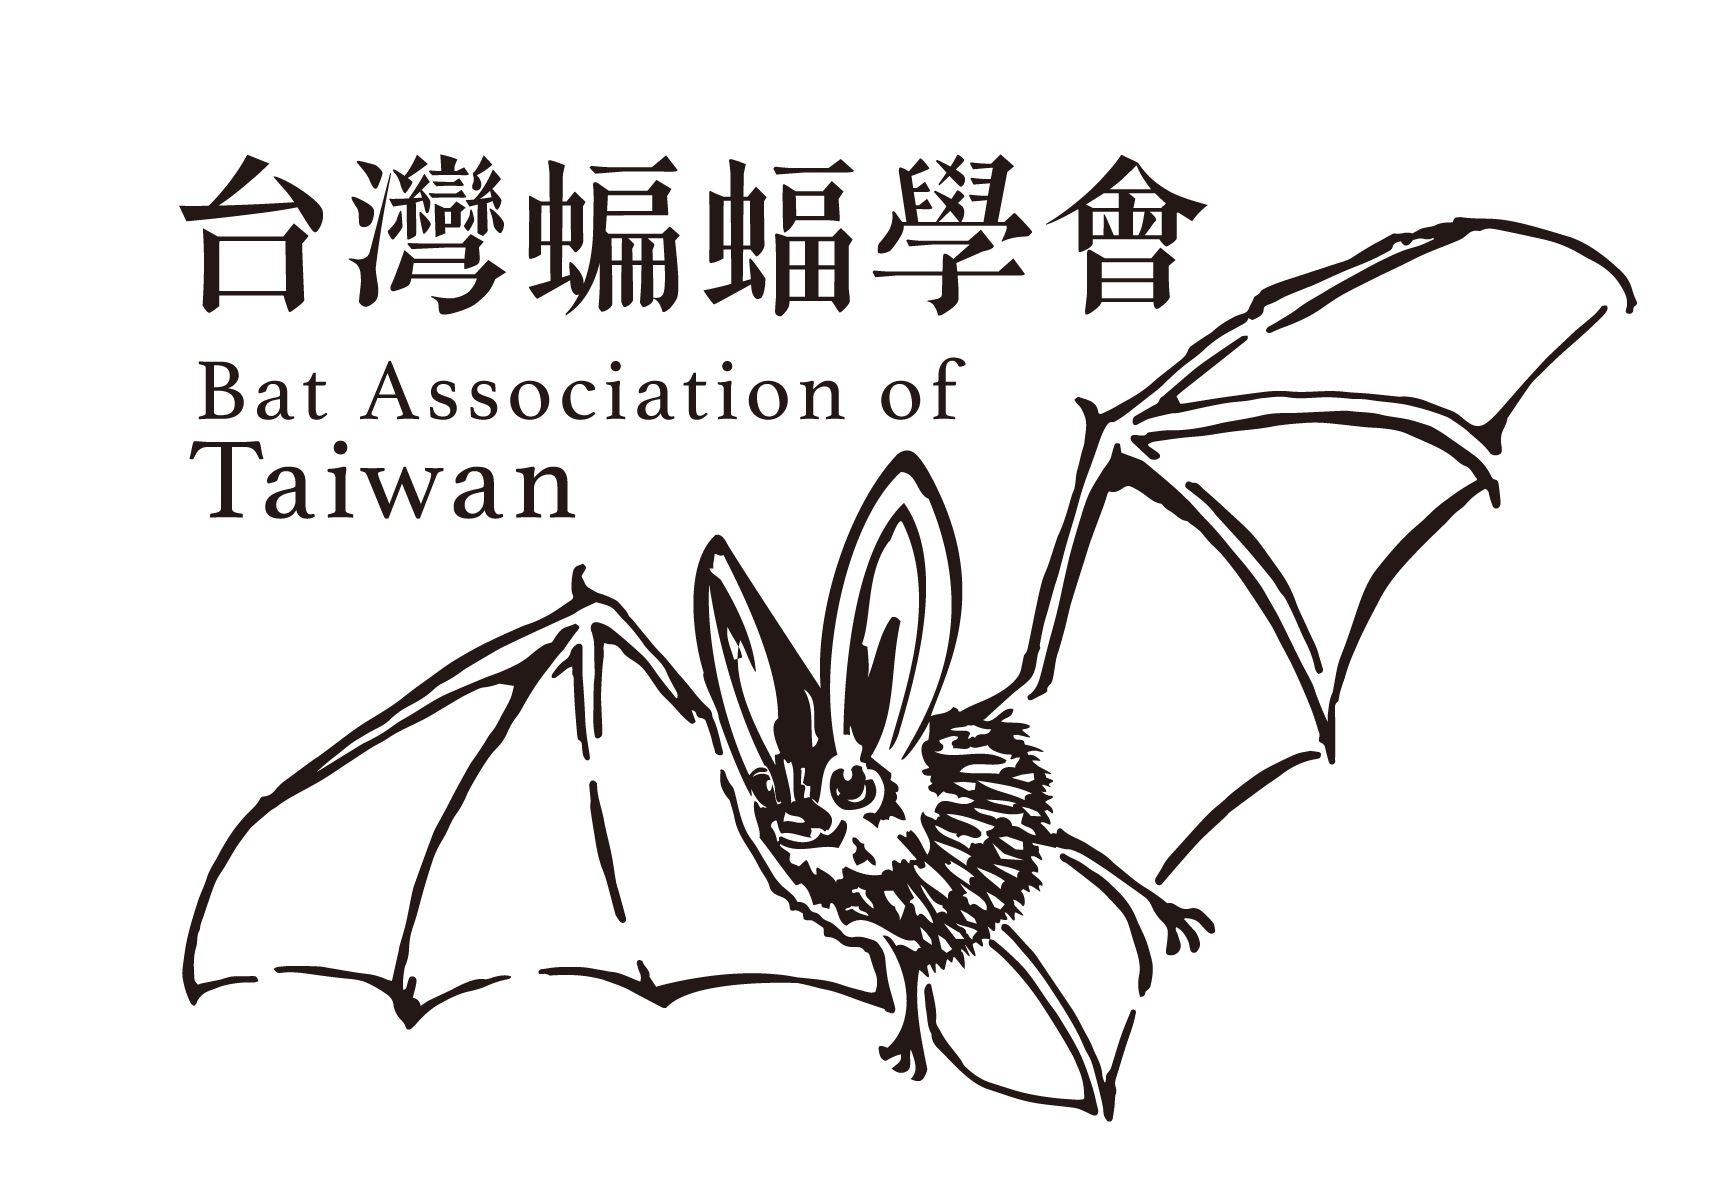 Bat Association of Taiwan